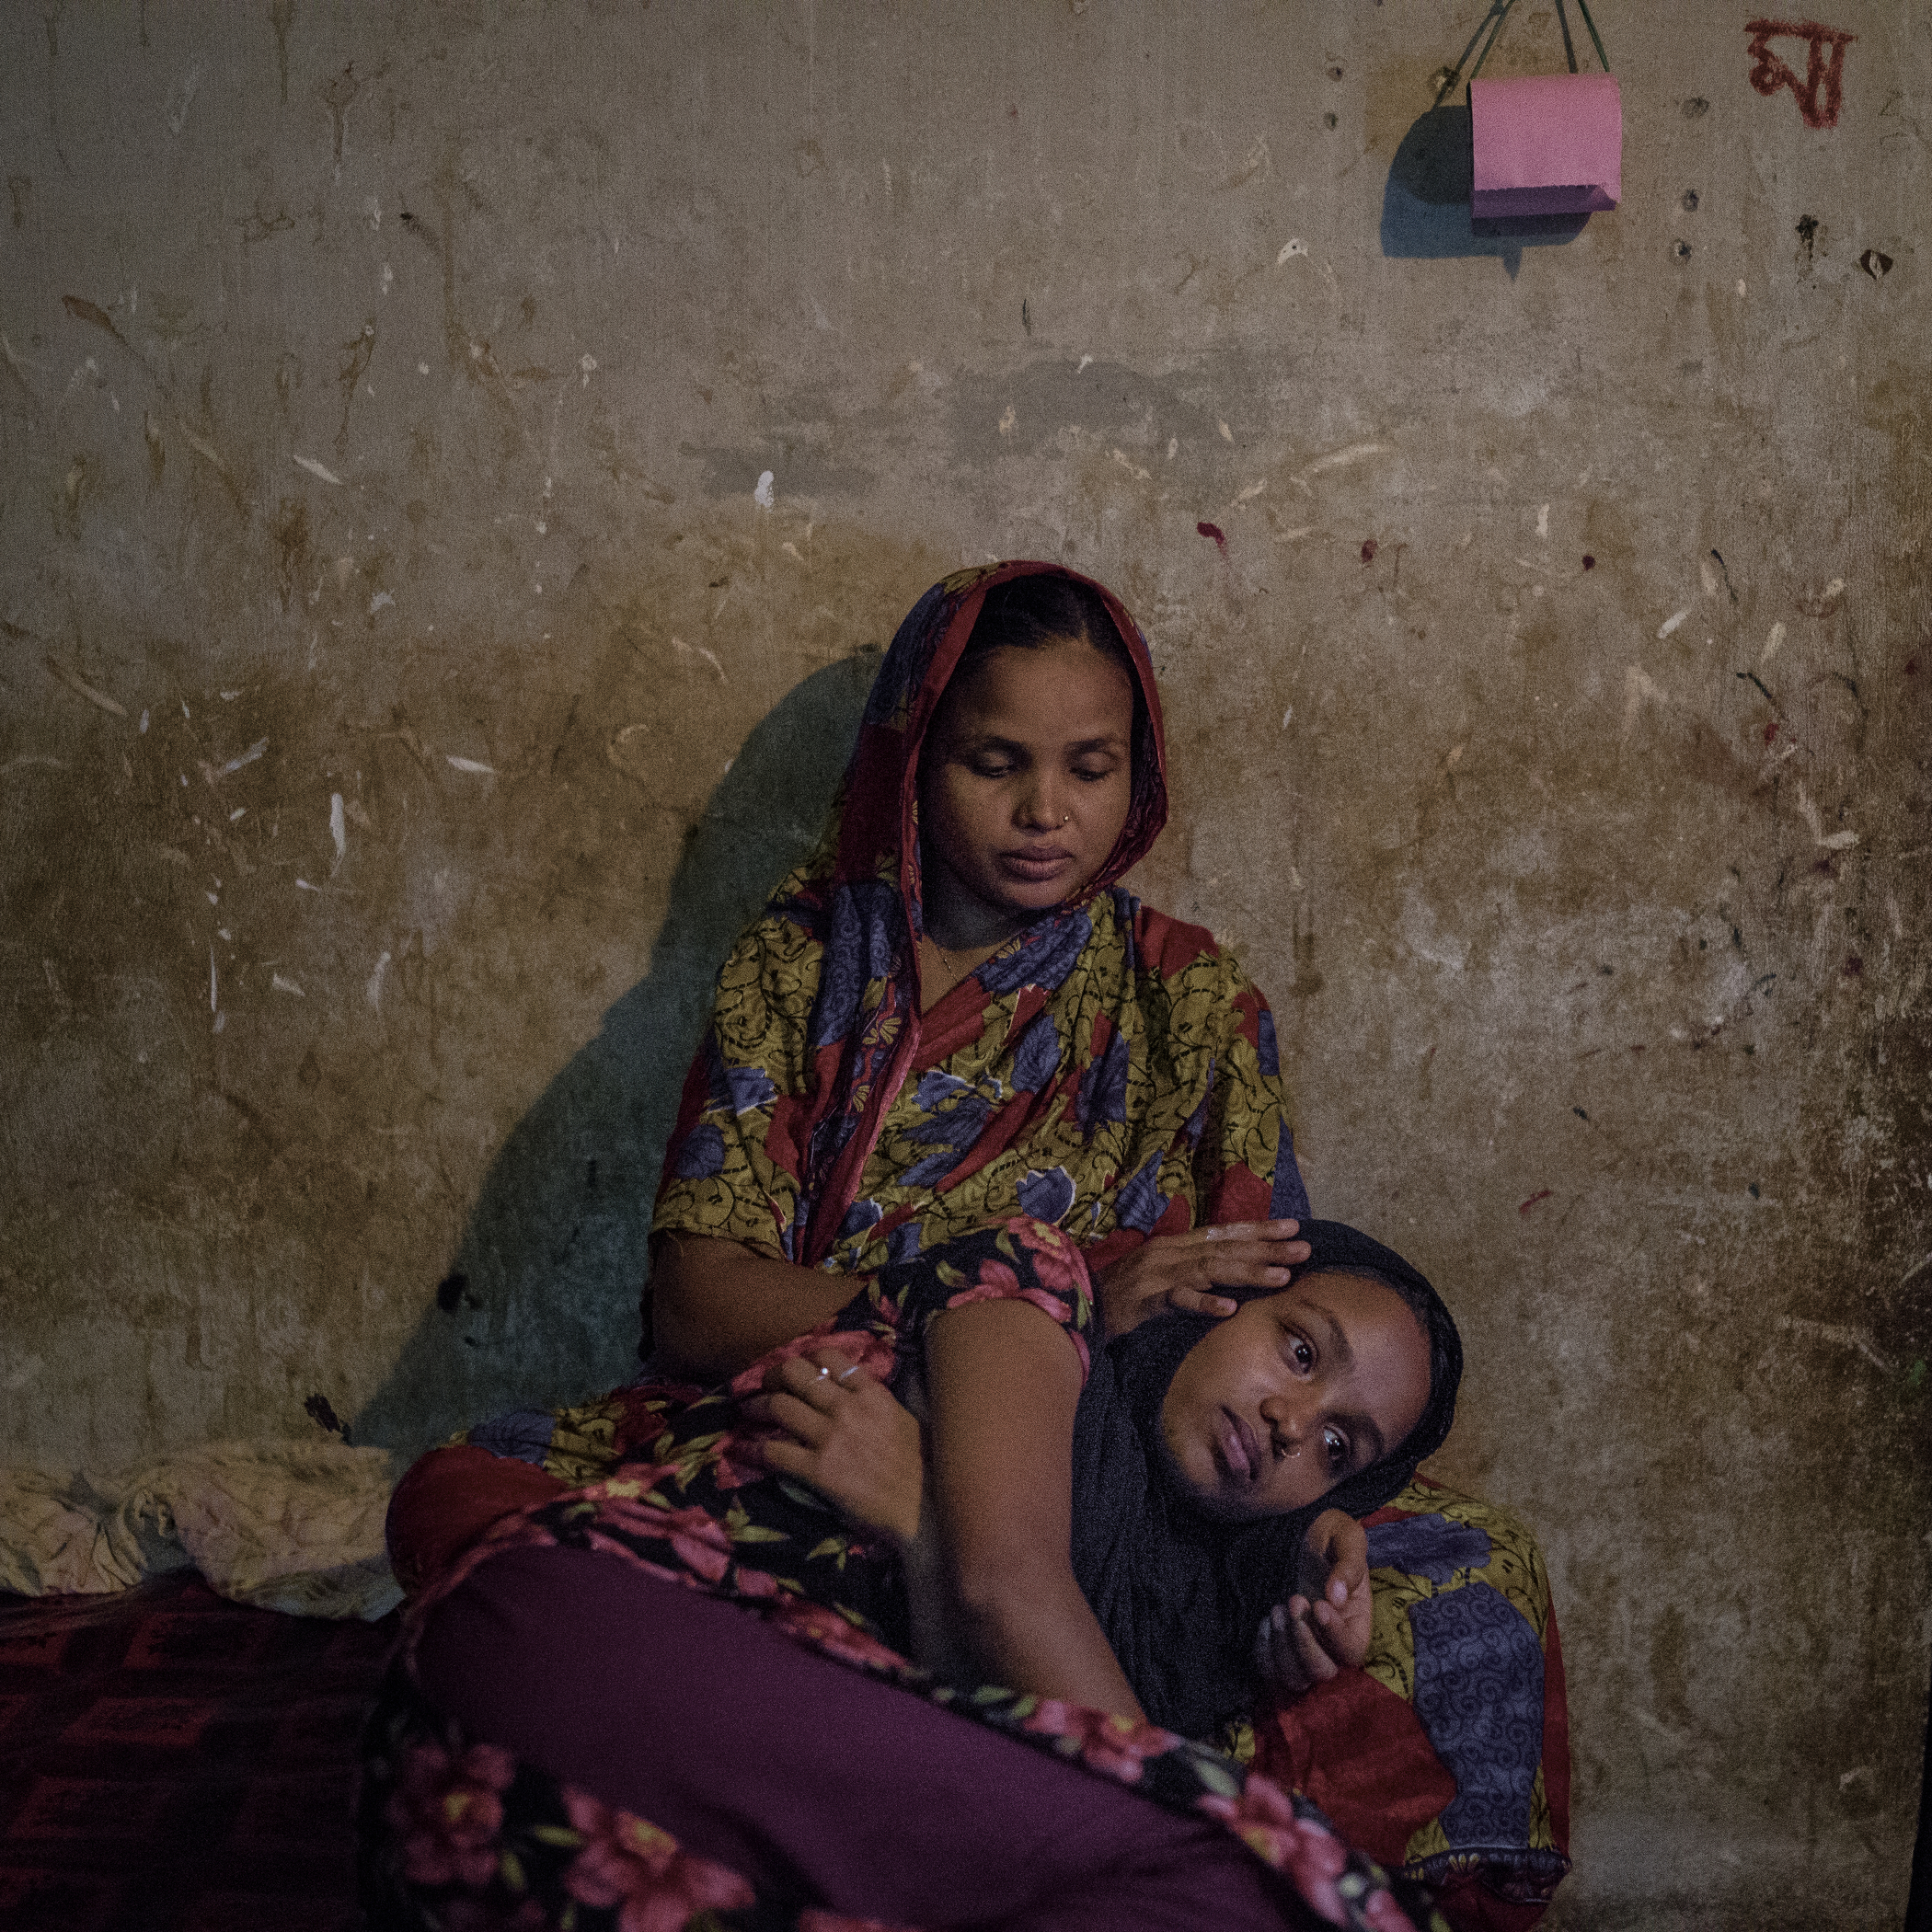 Parvin Begum consoles her daughter Rabeya Khanam, who survived the Rana Plaza collapse but suffers from emotional, mental, and physical trauma